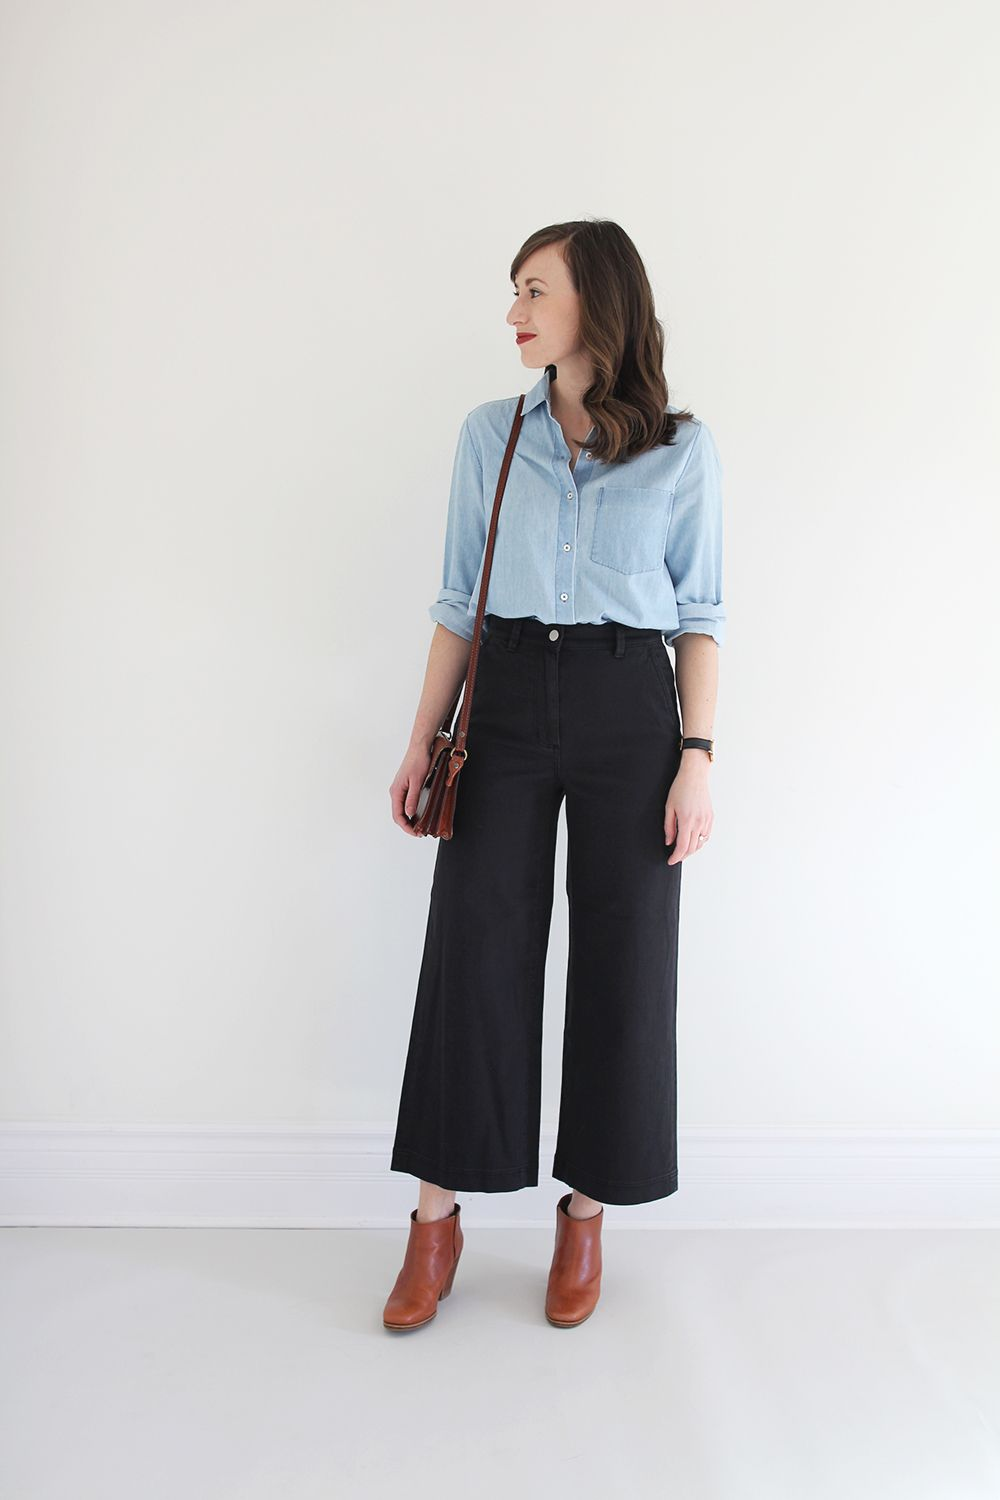 Style Bee - Everlane Wide Leg Crop Pant | \ Style Bee Blog ...